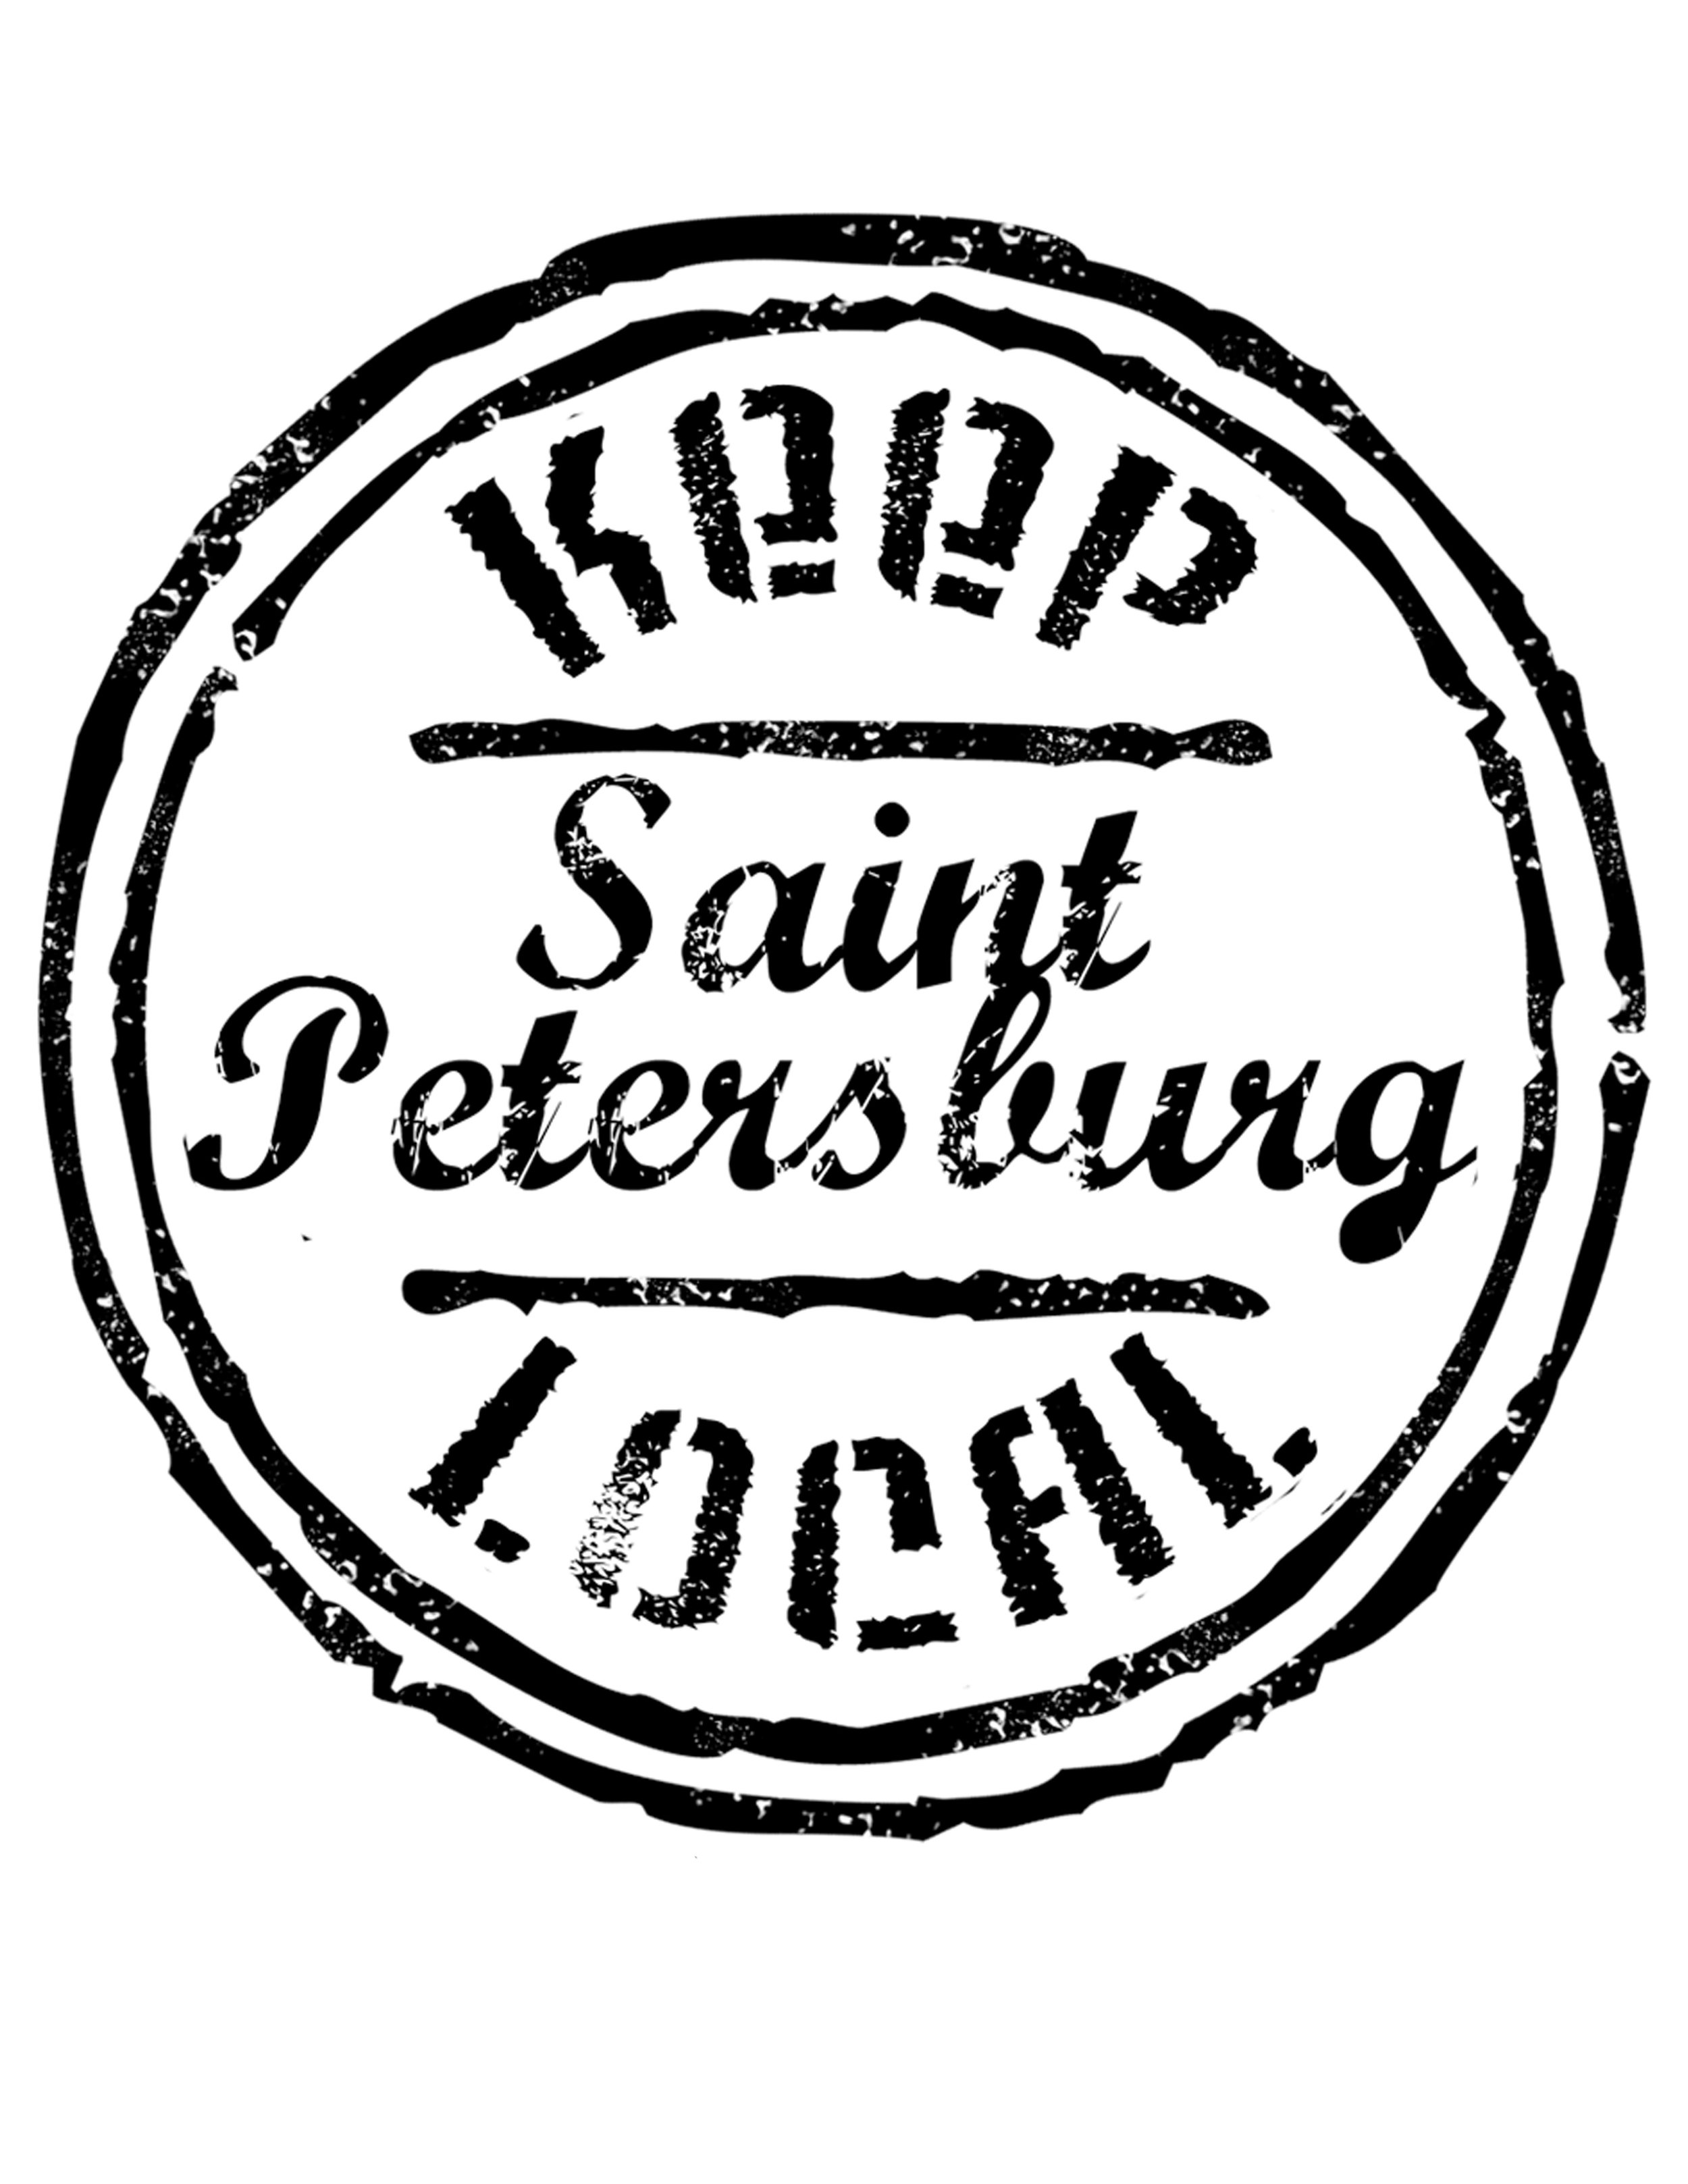 Keep Saint Petersburg Local is a non-profit organization, affiliated with the American Independent Business Alliance ( www.amiba.net ), working to build a thriving local economy and a unique community. They do this by nurturing connections for and acting as the voice of locally-owned, independent businesses and by raising awareness of the importance of buying local.   www.keepsaintpetersburglocal.org   ____________________________   We're a proud member and a part of a large community of like-minded entrepreneurs who strengthen St. Pete's economy and maintain the uniqueness of the community